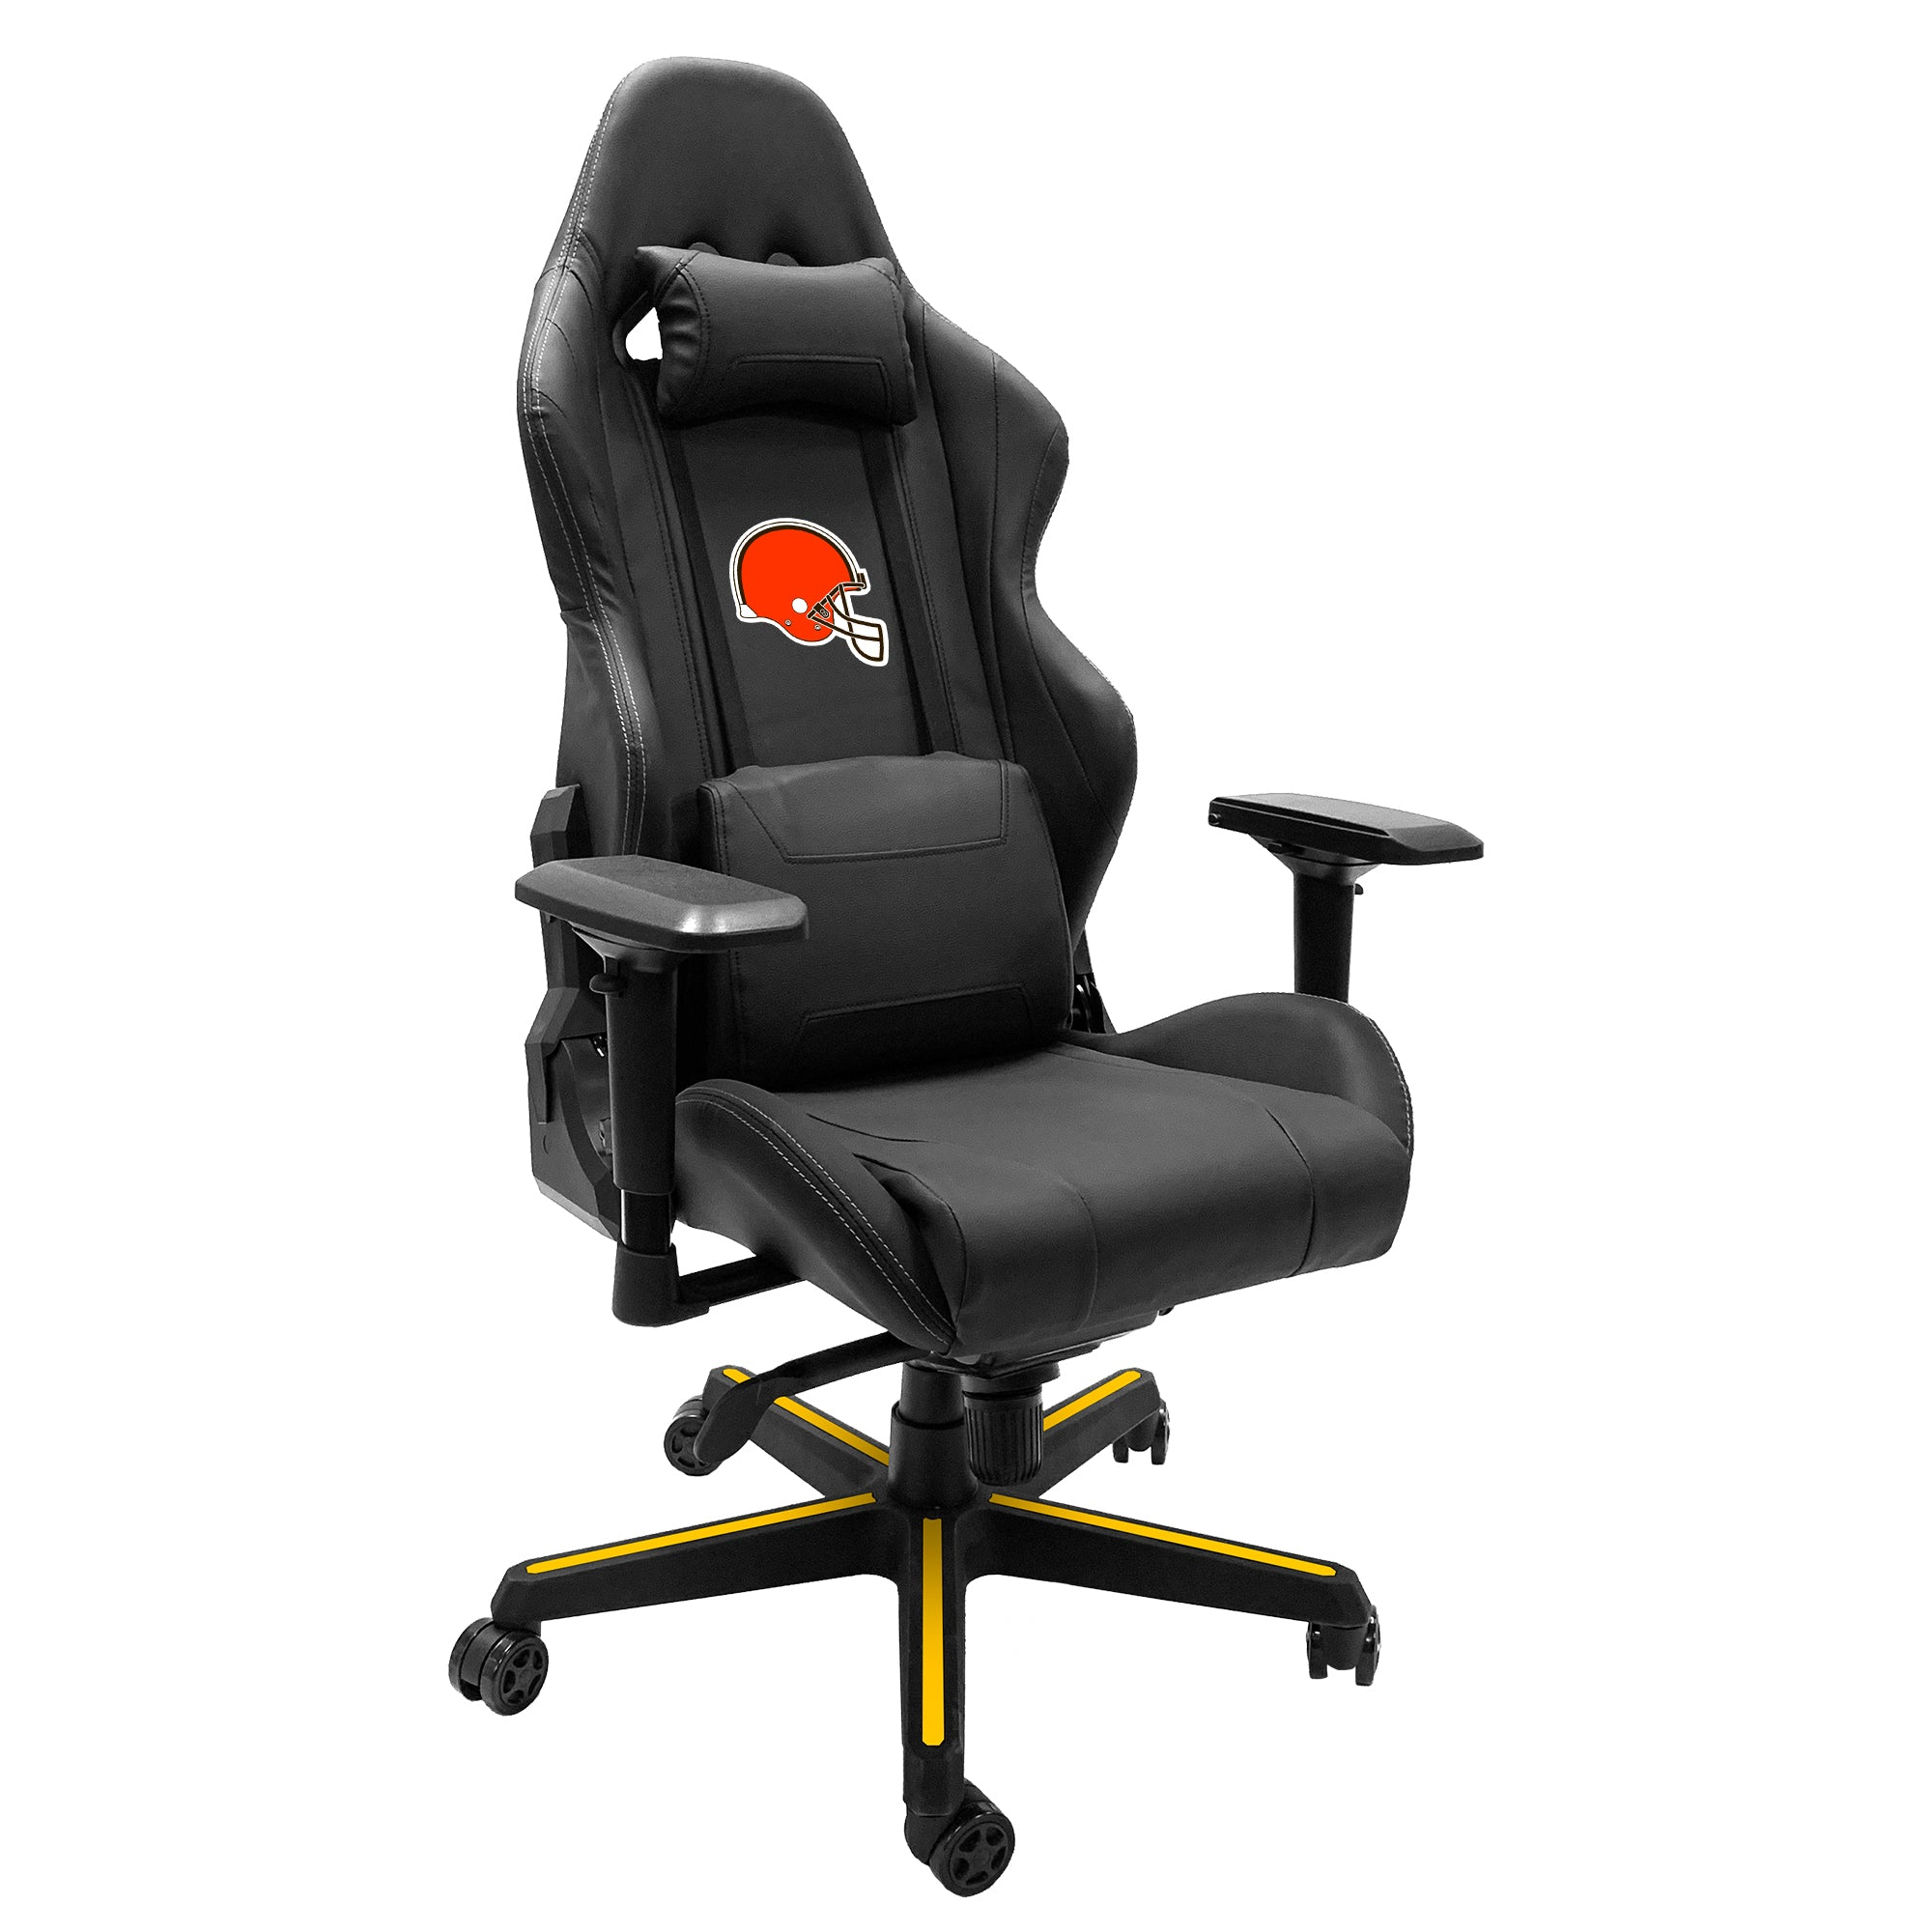 Xpression Gaming Chair with  Cleveland Browns Helmet Logo